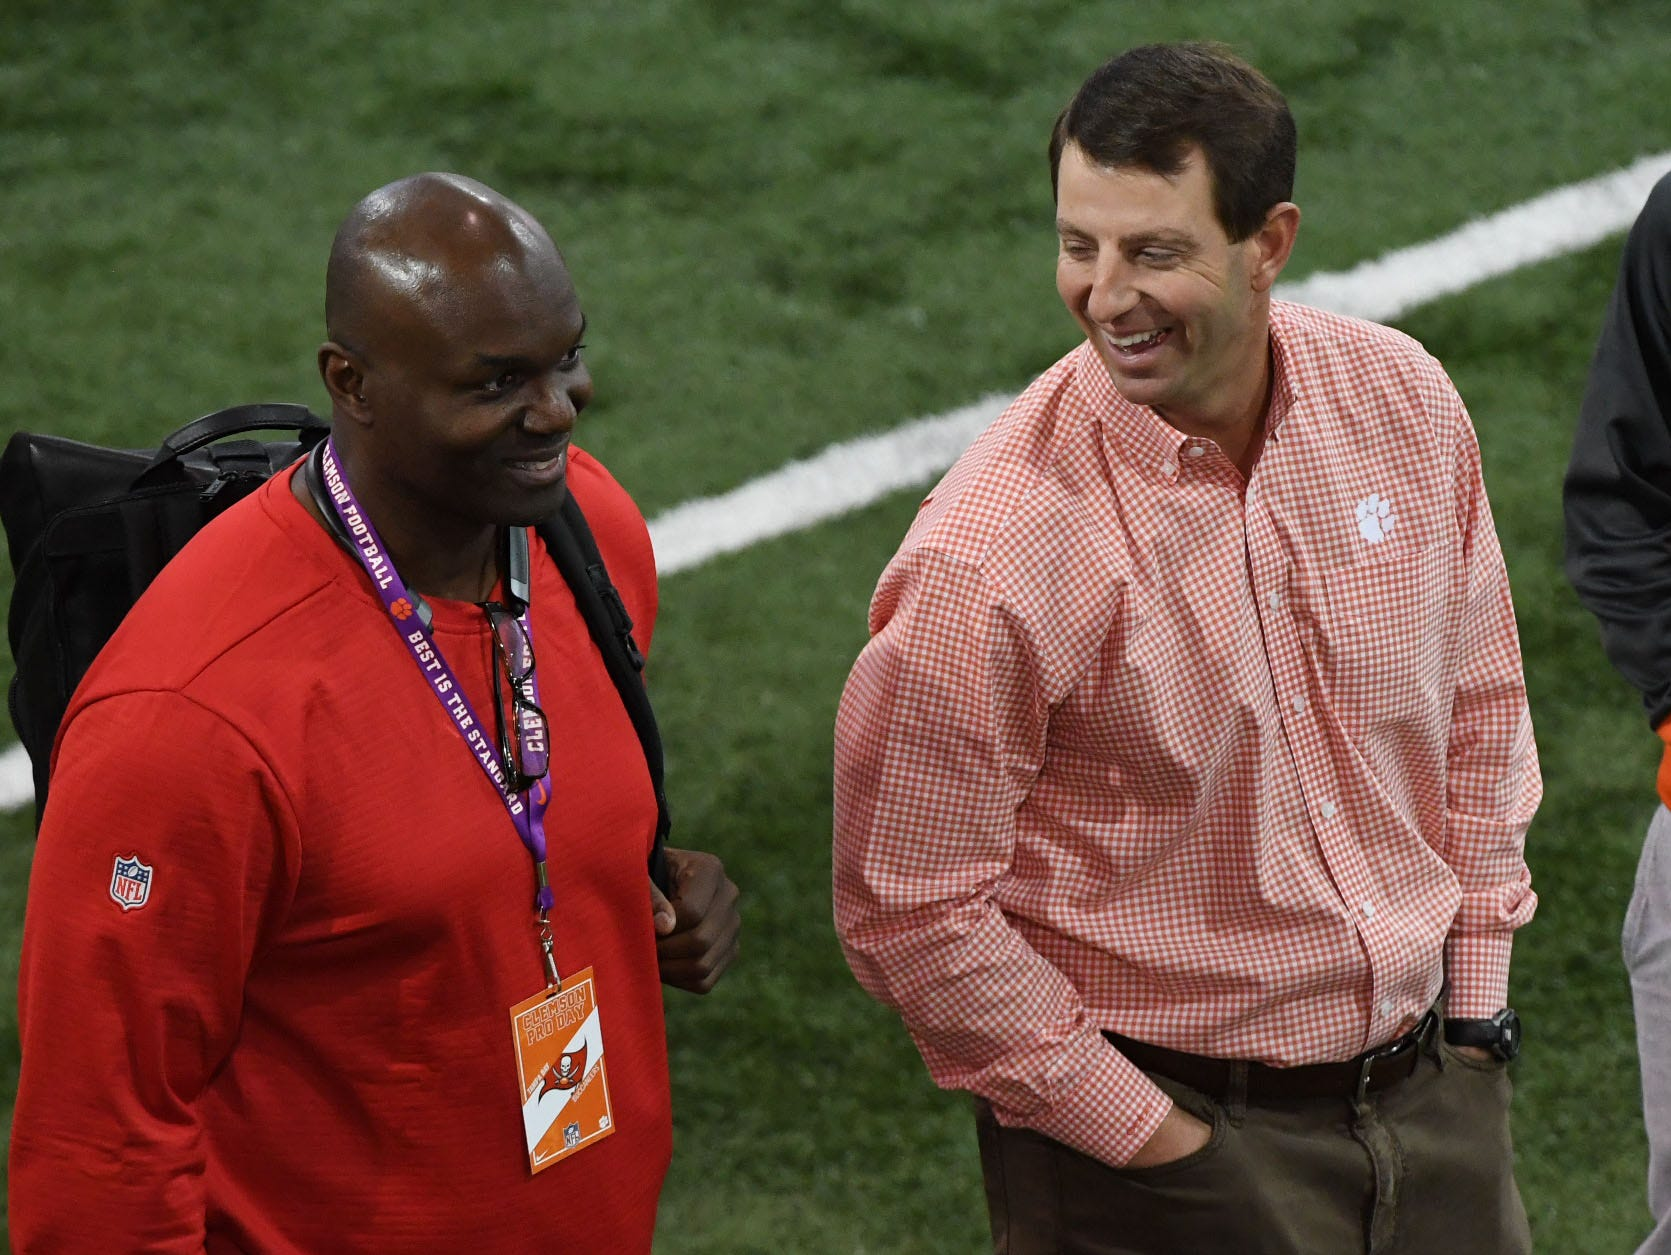 Clemson head football coach Dabo Swinney, right, talks with NFL scout from Tampa Bay during Clemson Pro Day at the Poe Indoor Facility in Clemson, S.C. Thursday, March 14, 2019.